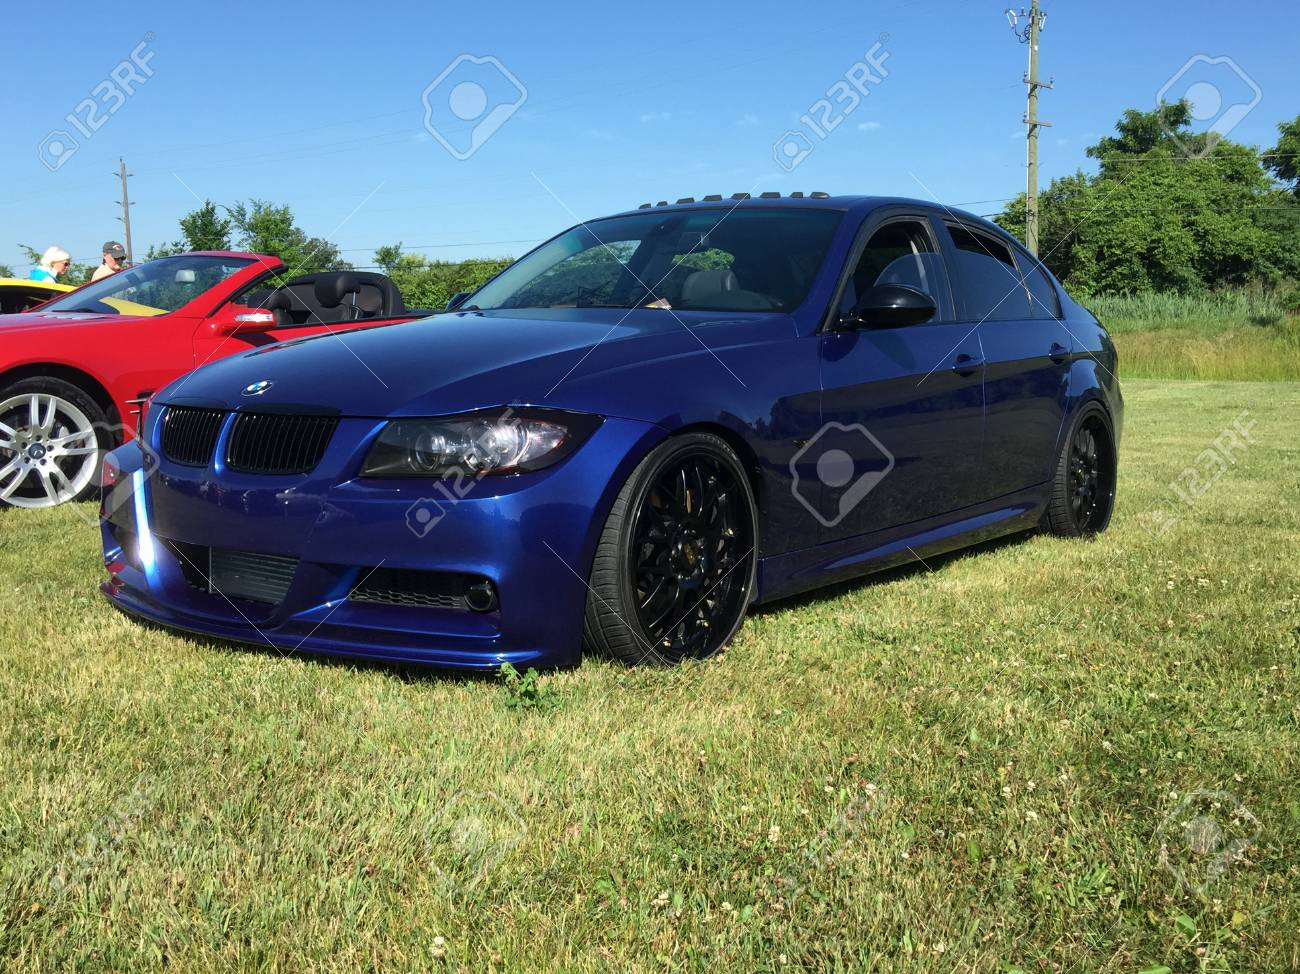 Blue Bmw Sedan With Black Mag Rims At A Cars And Coffee Event Stock Photo Picture And Royalty Free Image Image 105374531